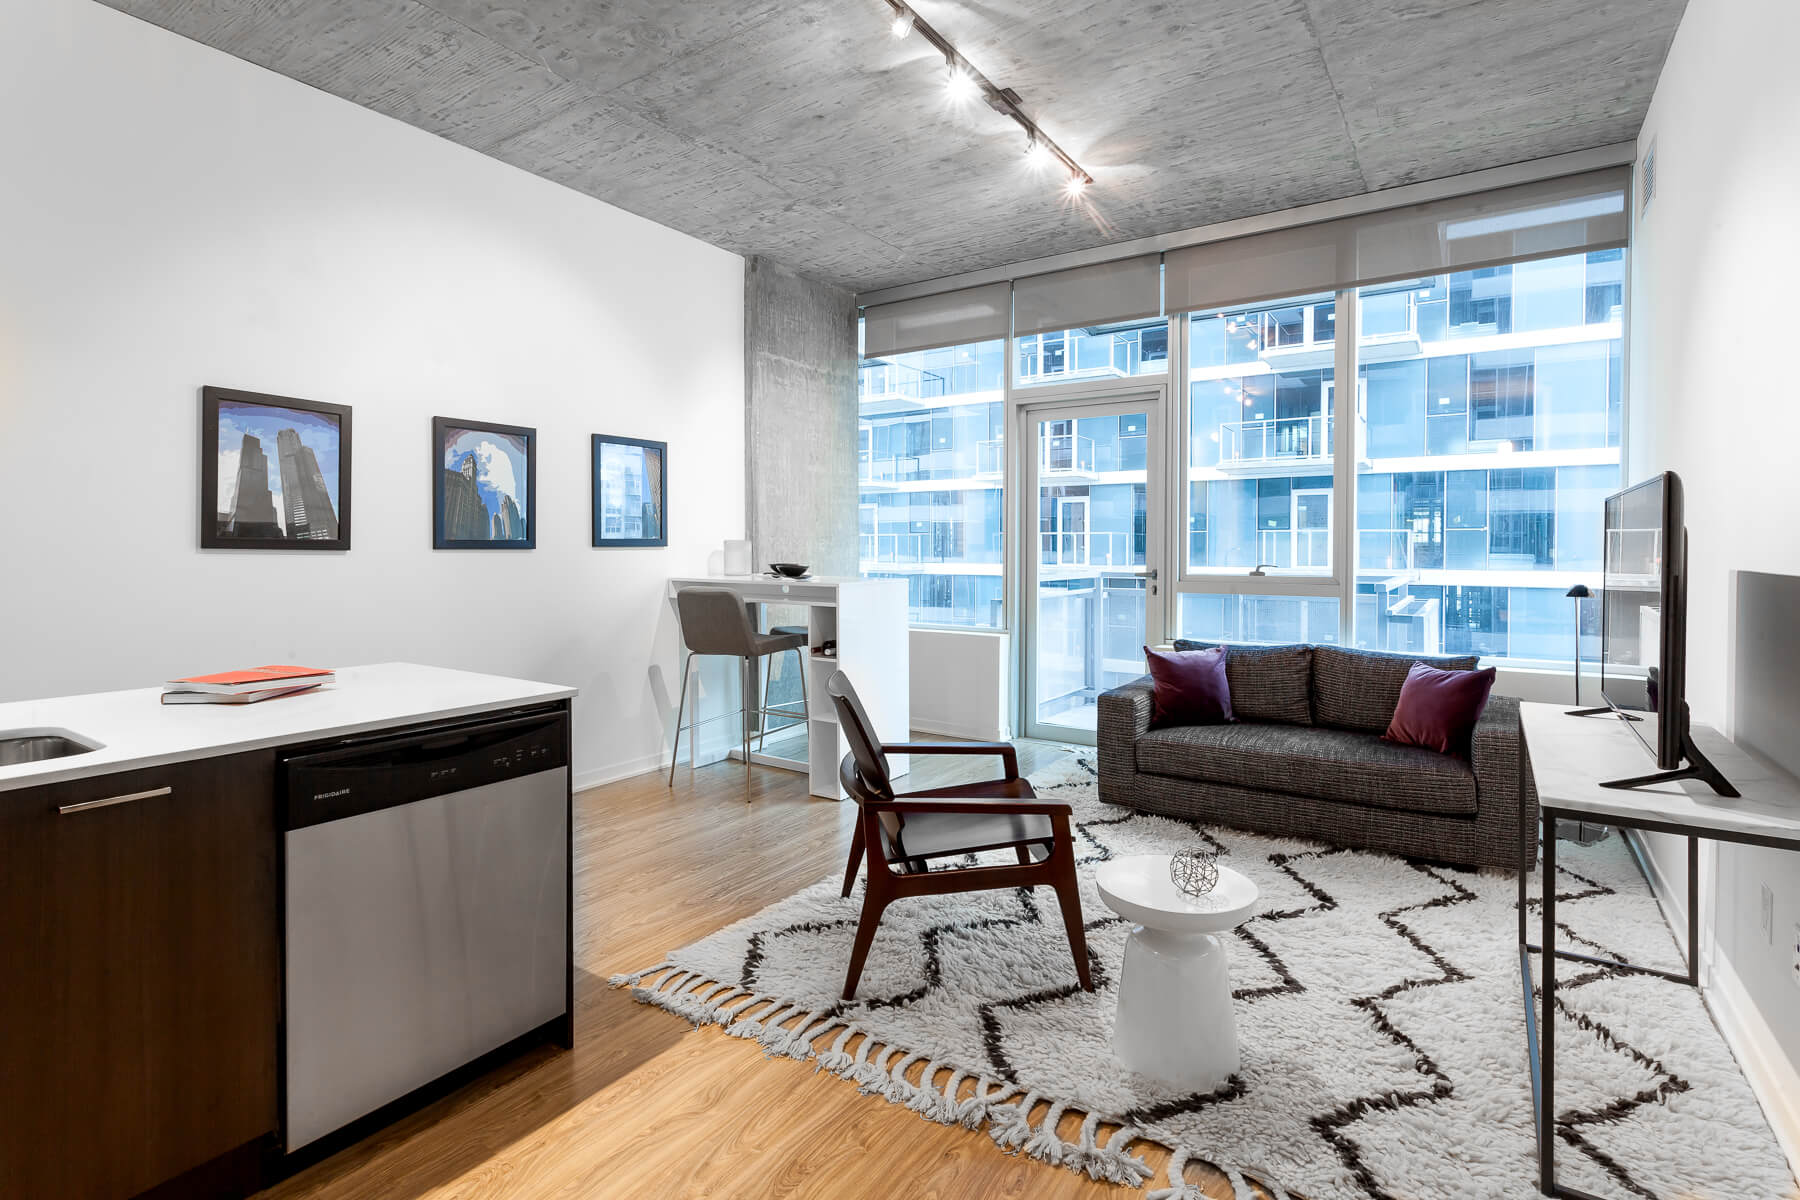 Best apartment search site in Chicago - 1333 Wabash